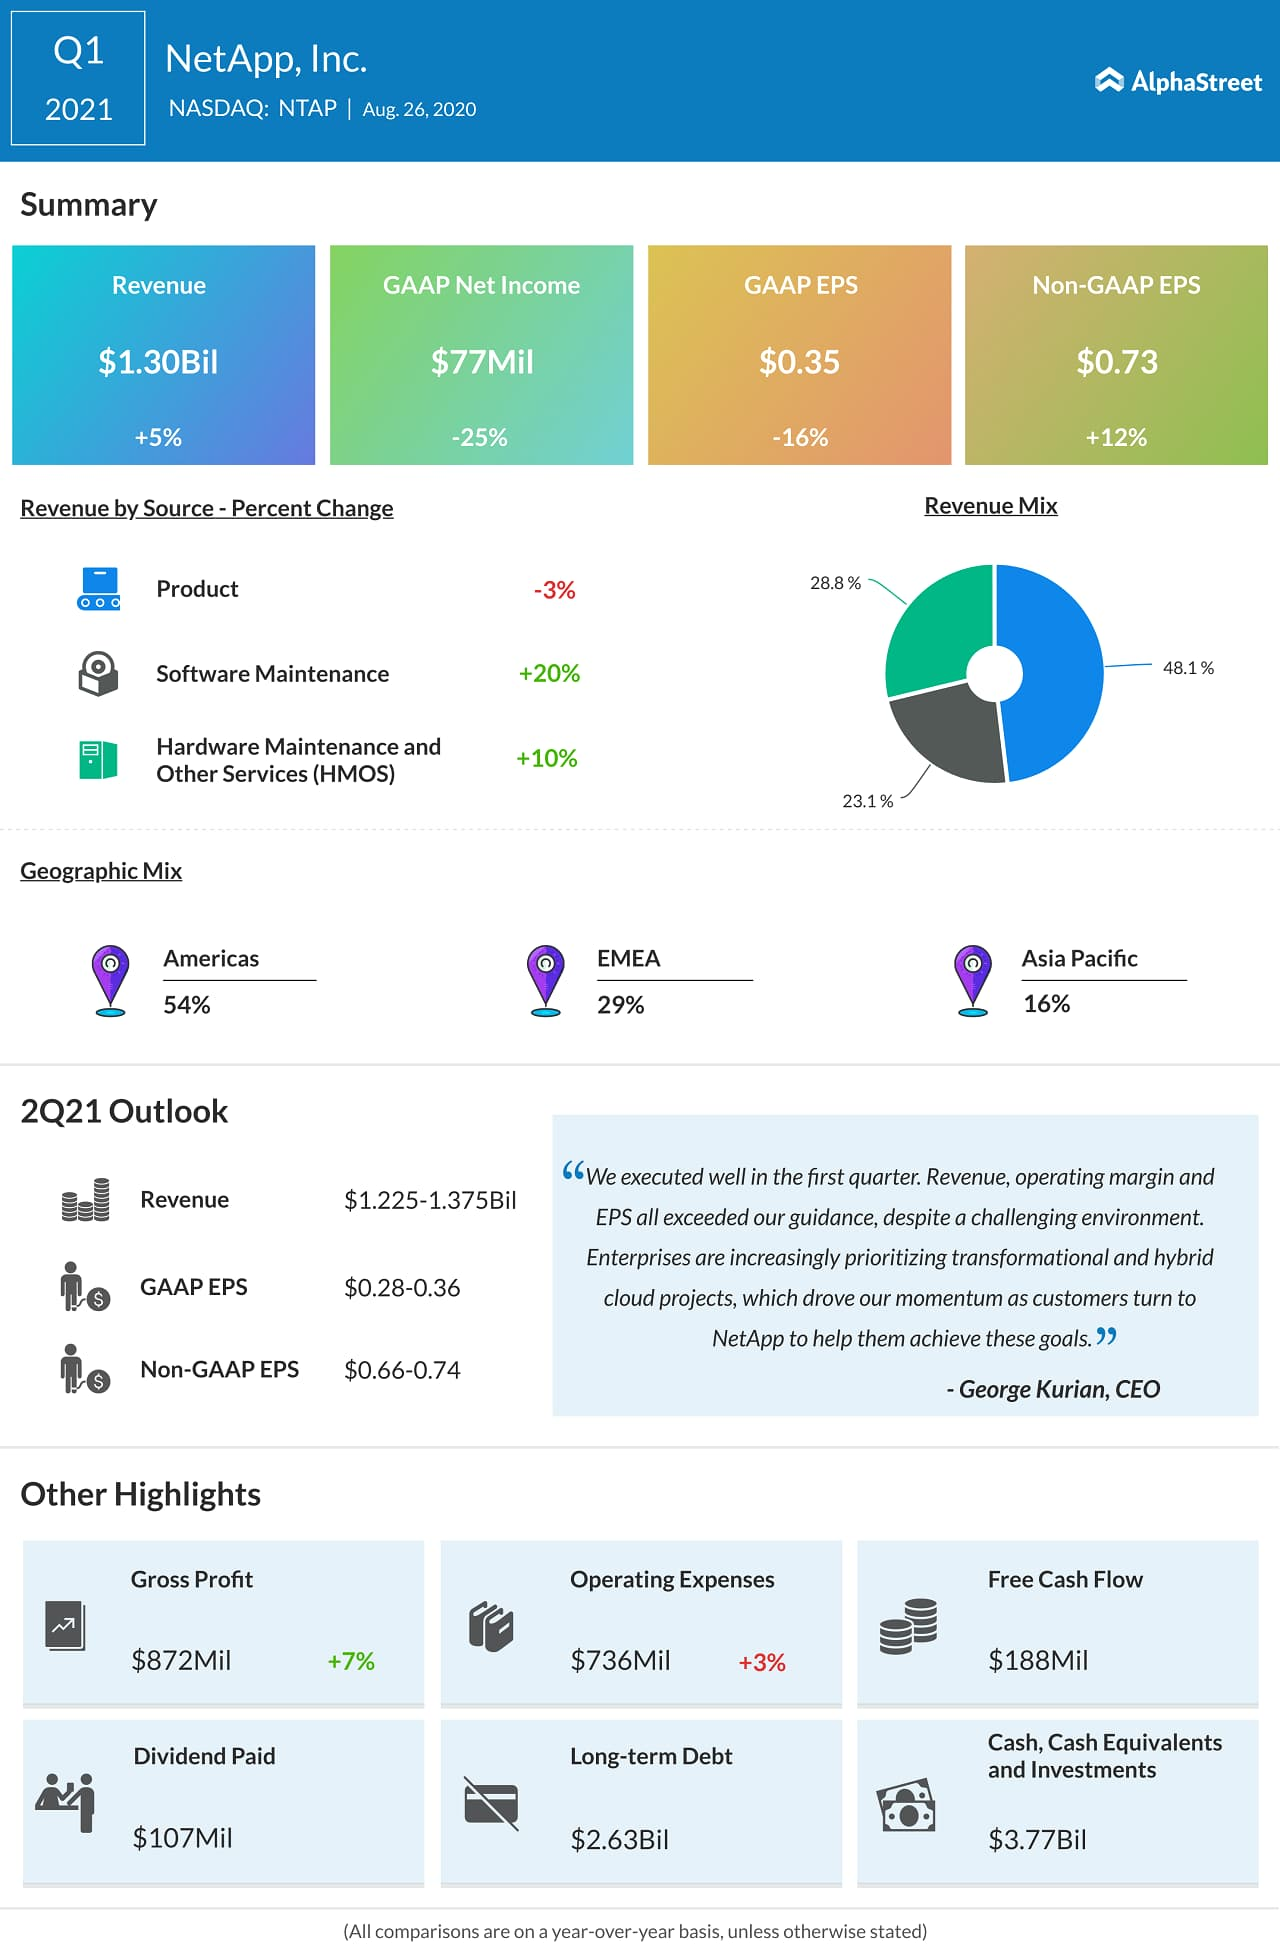 NetApp (NTAP) Q1 2021 Earnings Infographic